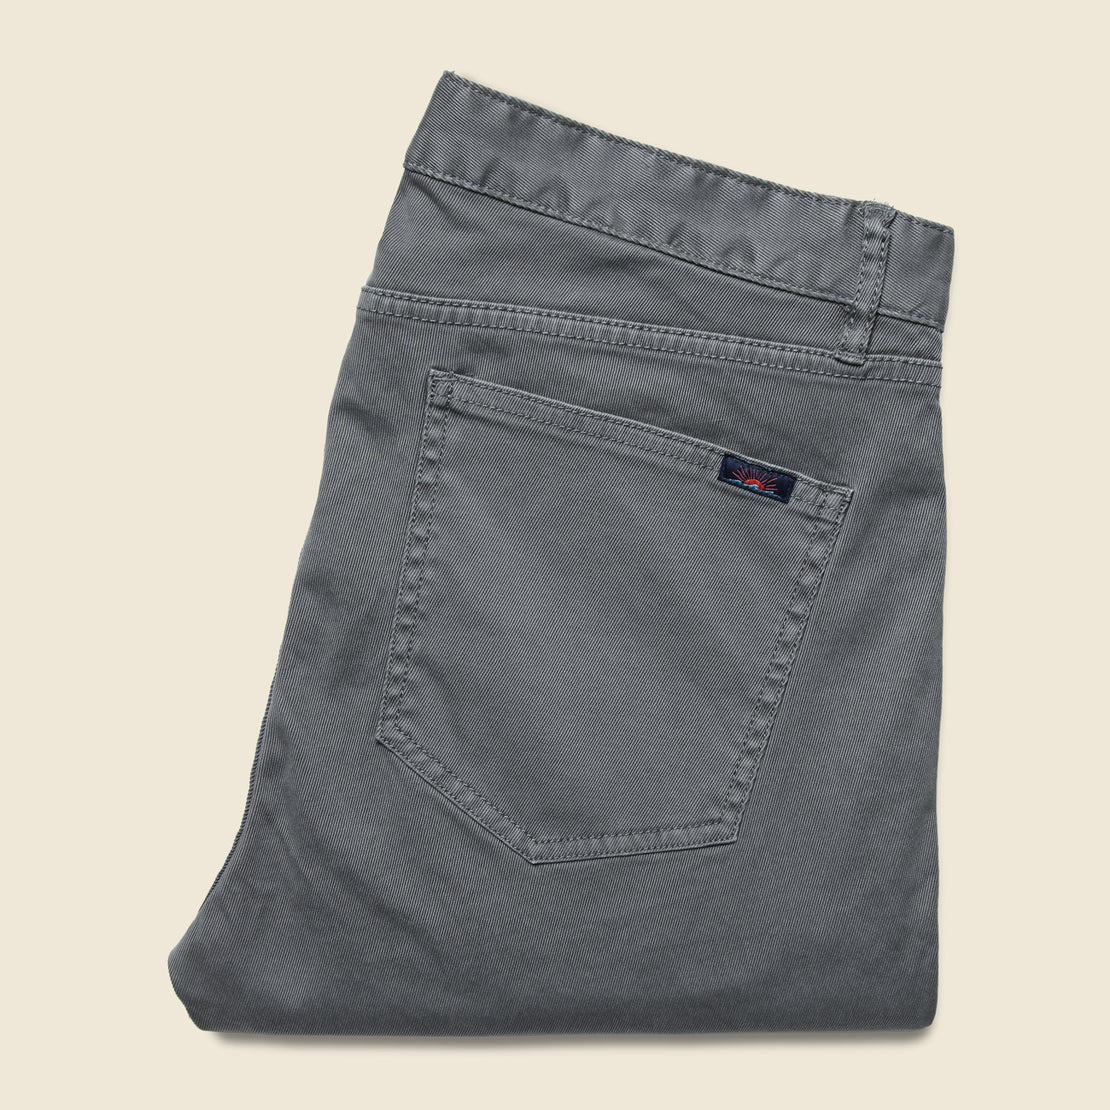 Cavalry Jean - Rugged Grey - Faherty - STAG Provisions - Pants - Twill